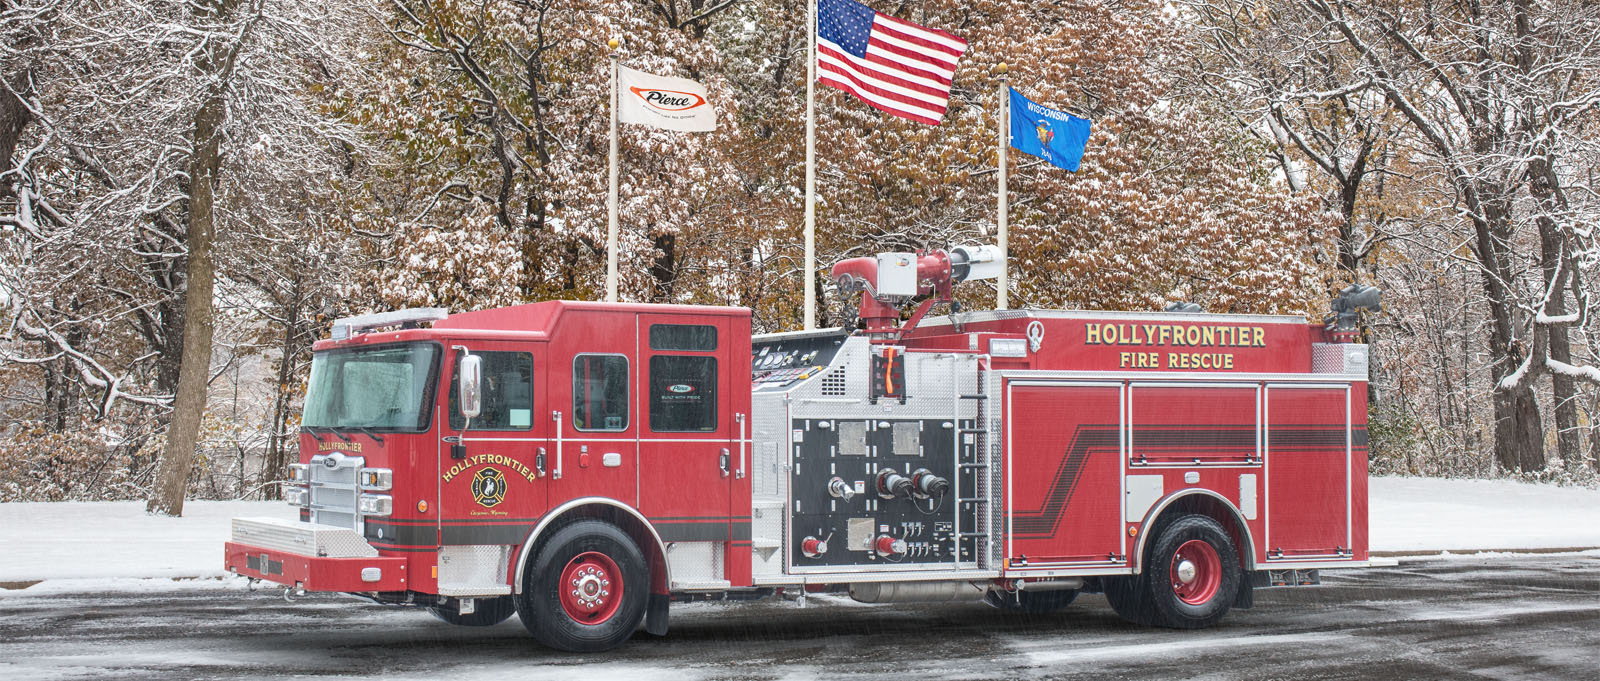 The red HollyFrontier pumper truck is pictured parked in a lot with flags flying in the background.